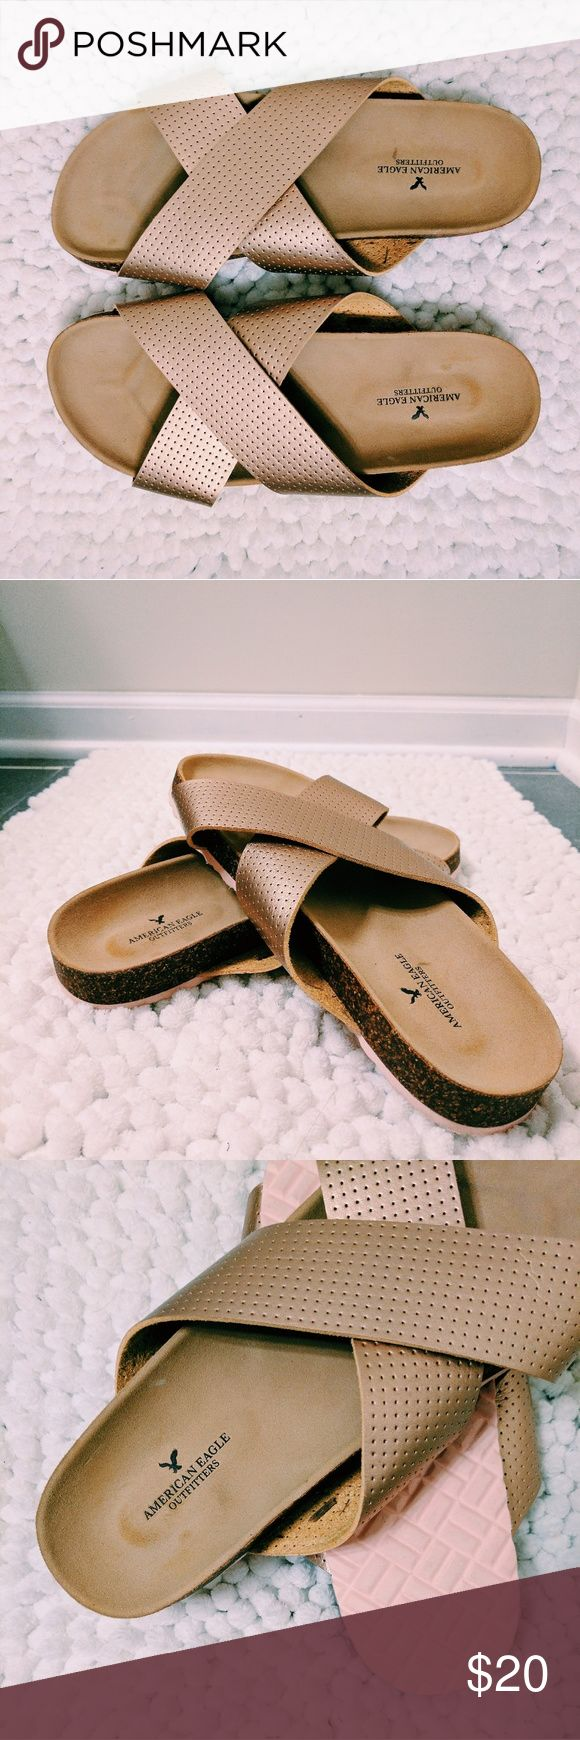 AEO Rose Gold Slides Brand new American Eagle Outfitters rose gold slip-on sandal. Worn literally once, VERY comfortable cushiony sole. My long toes hang over the edge unfortunately... Beautiful show up for grabs! Prices negotiable : ) American Eagle Outfitters Shoes Sandals